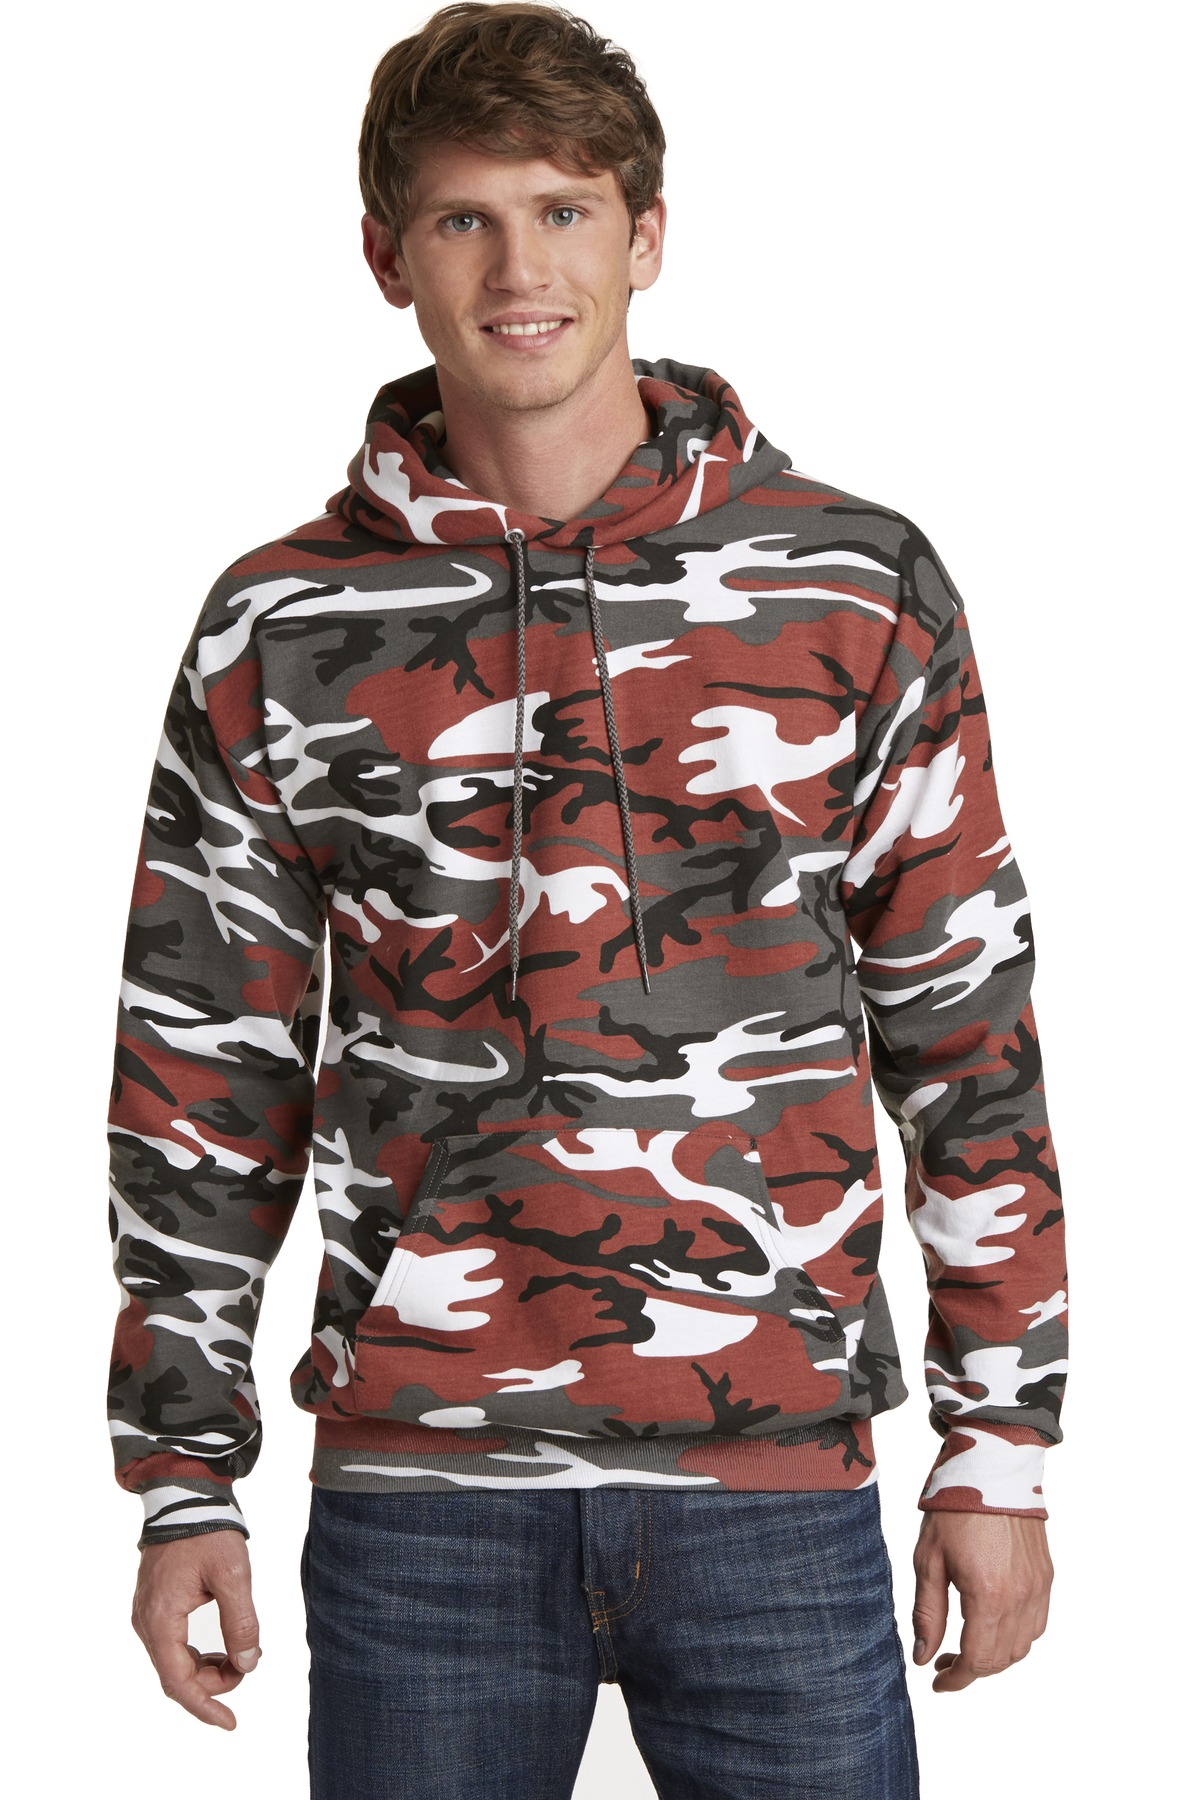 click to view Red Camo